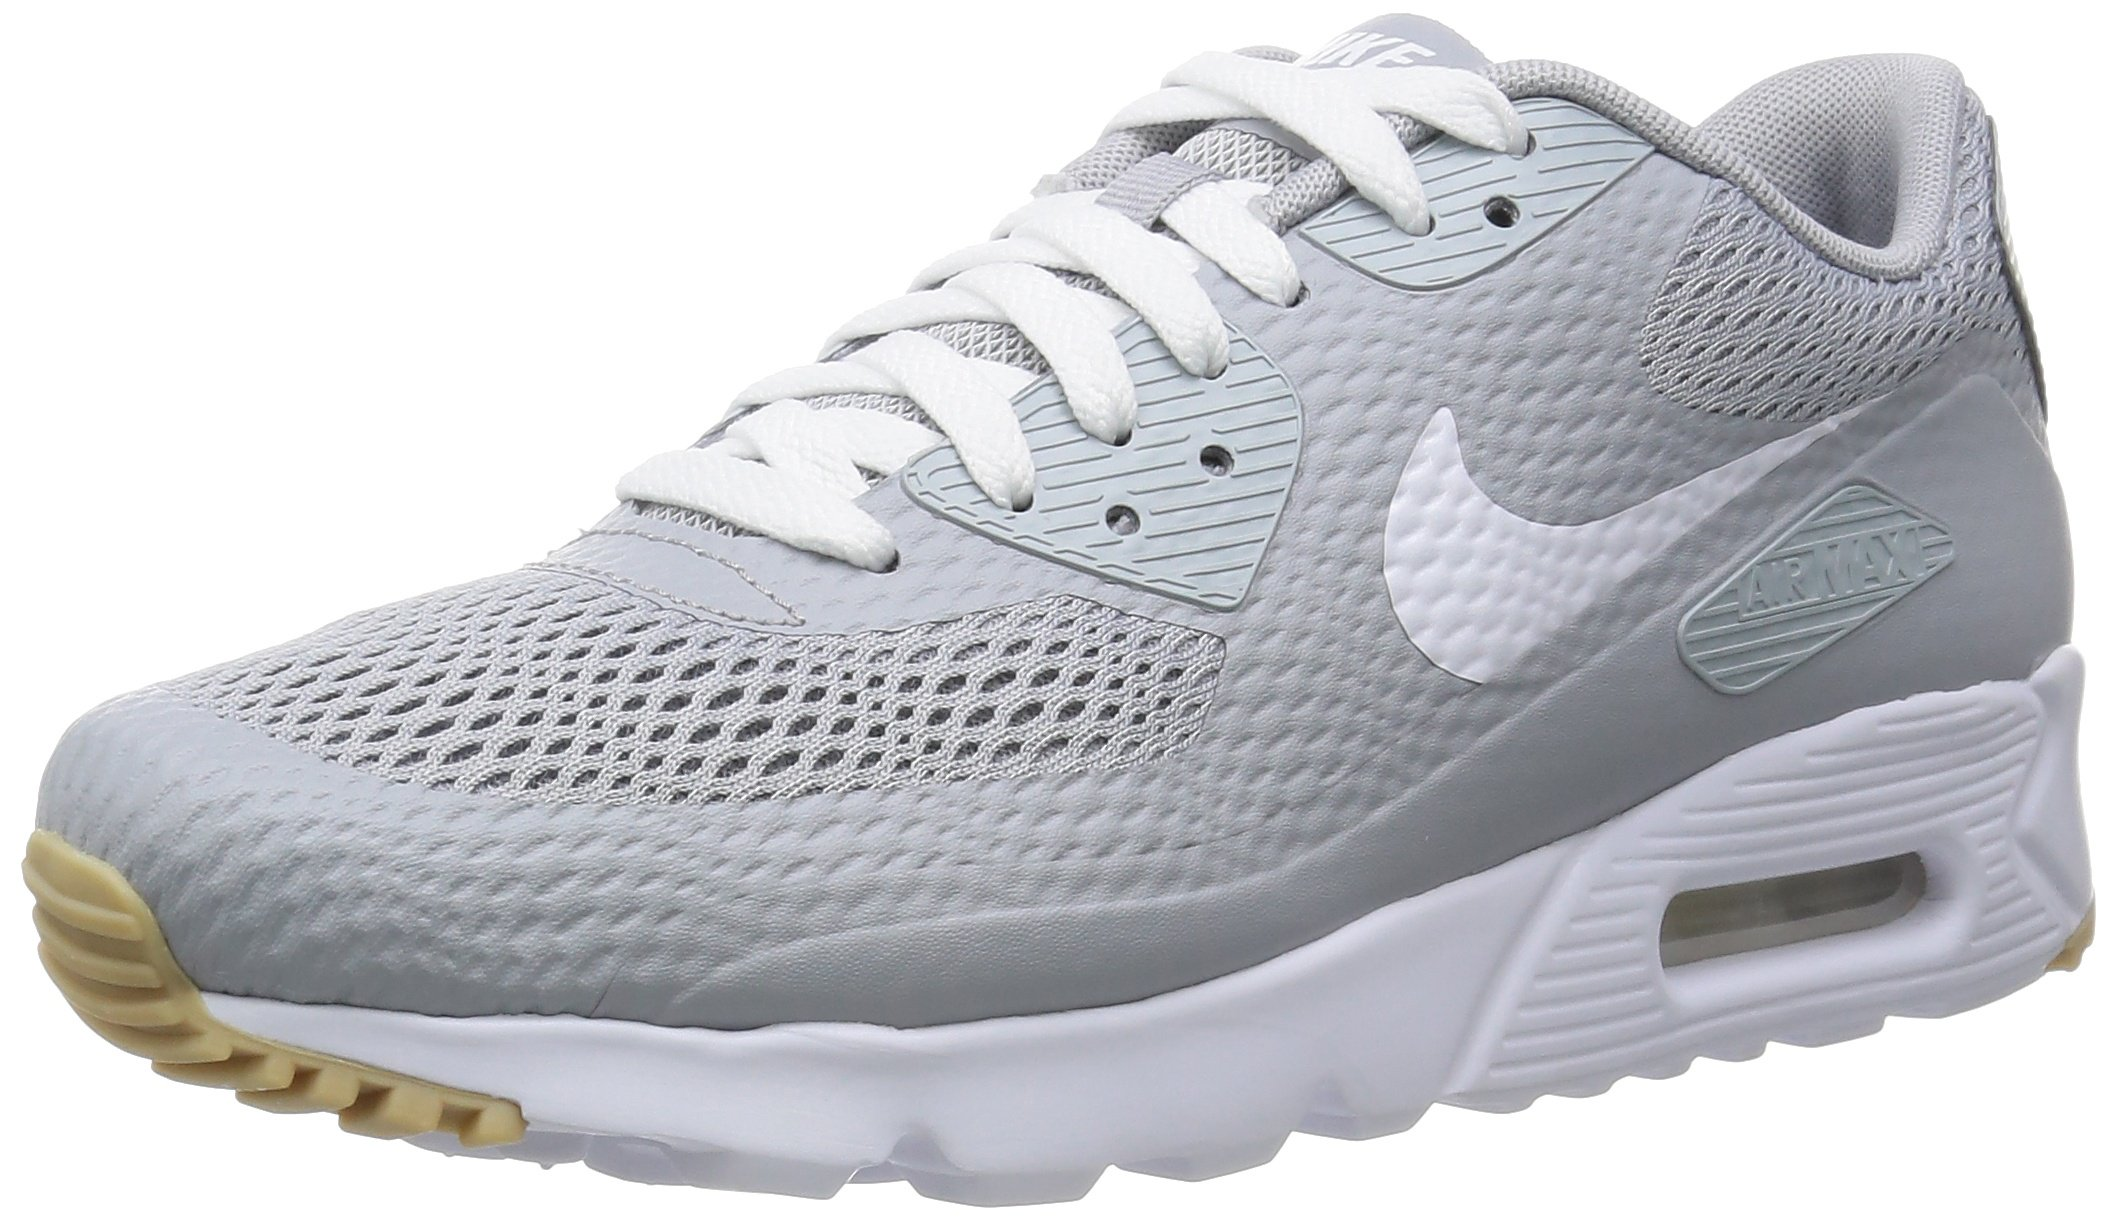 Nike air max 90 Ultra Essential Mens Trainers 819474 Sneakers Shoes (US 7, Wolf Grey White Wolf Grey 005)